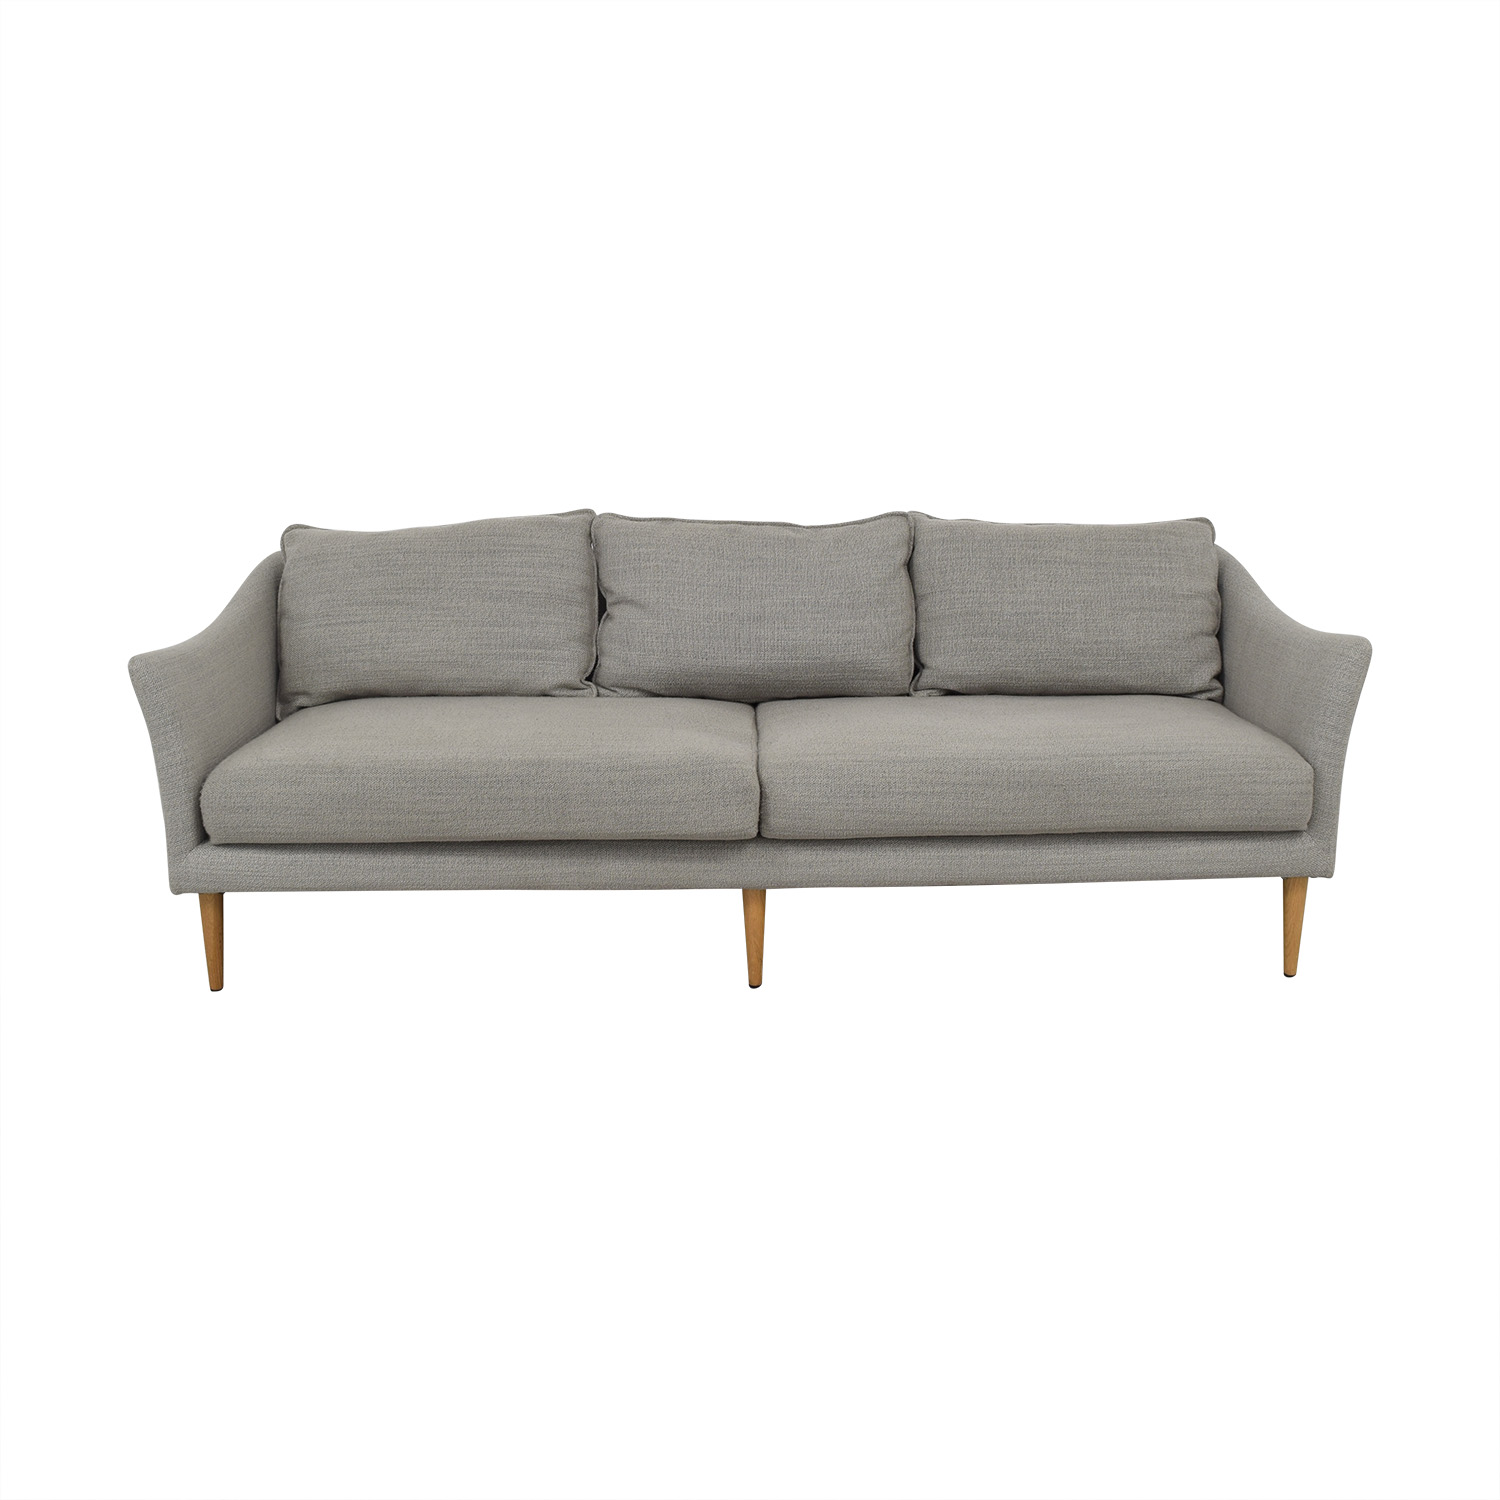 West Elm Antwerp Sofa / Sofas